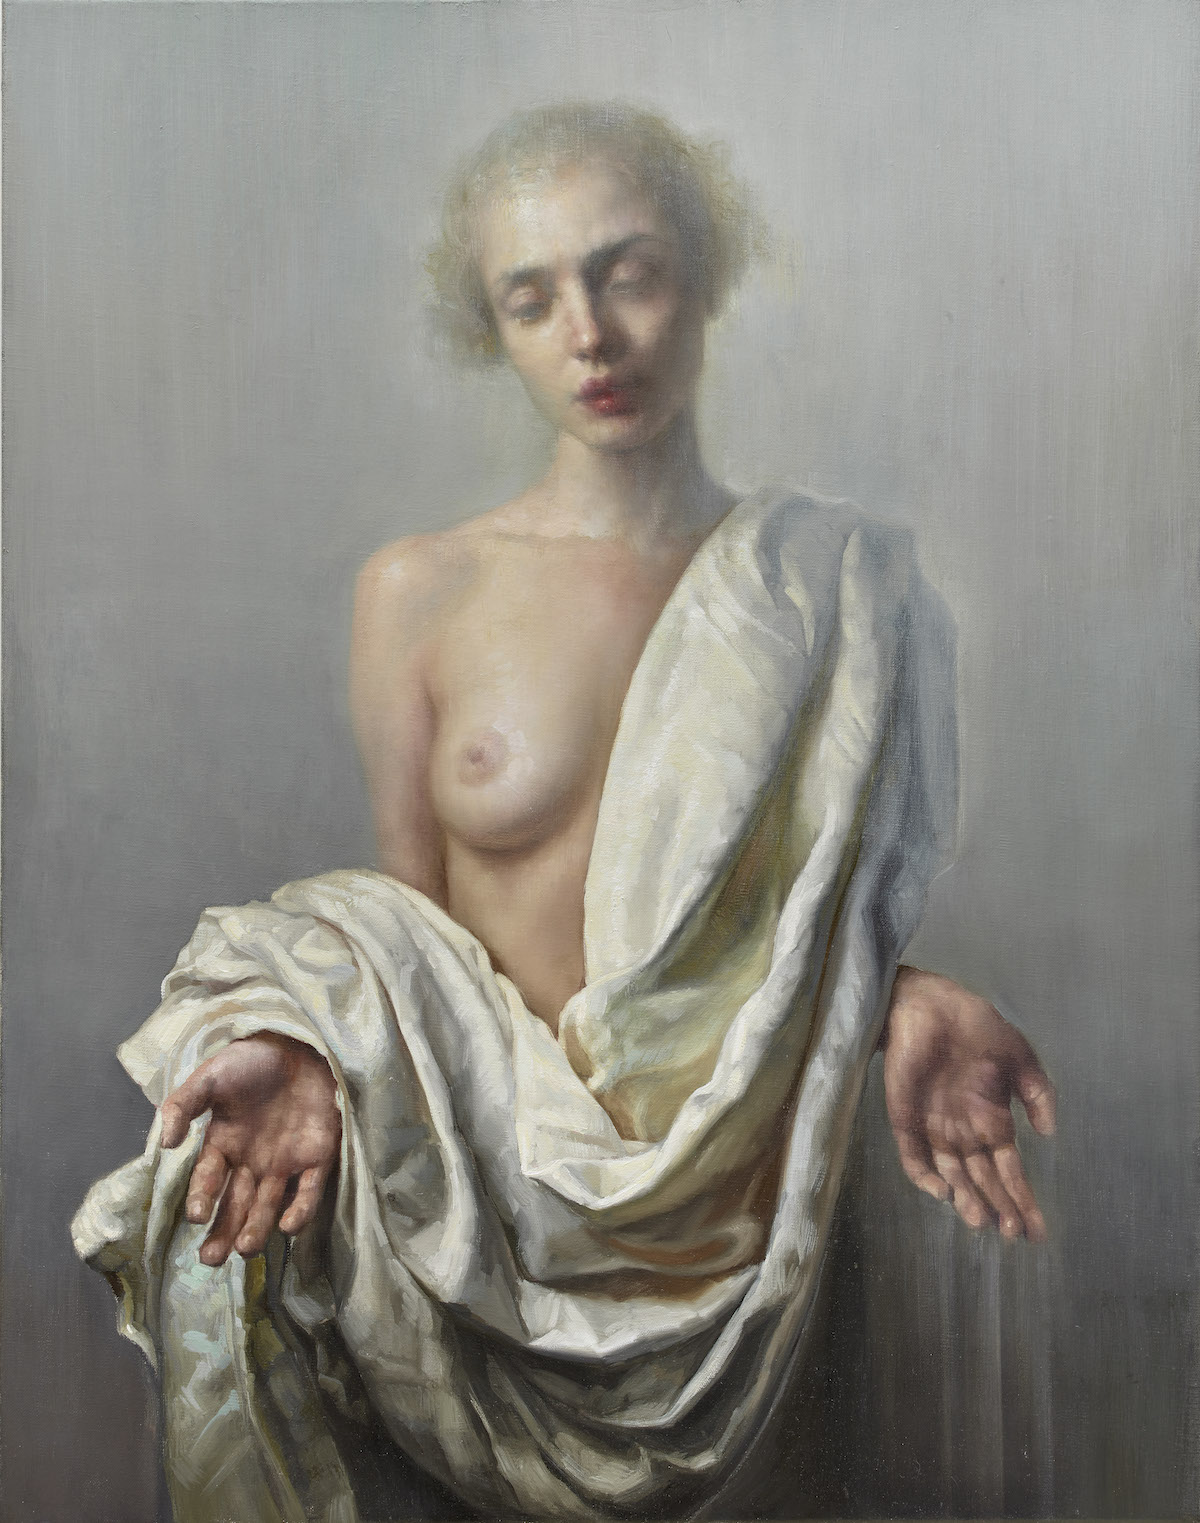 Oil on canvas by Maria Kreyn